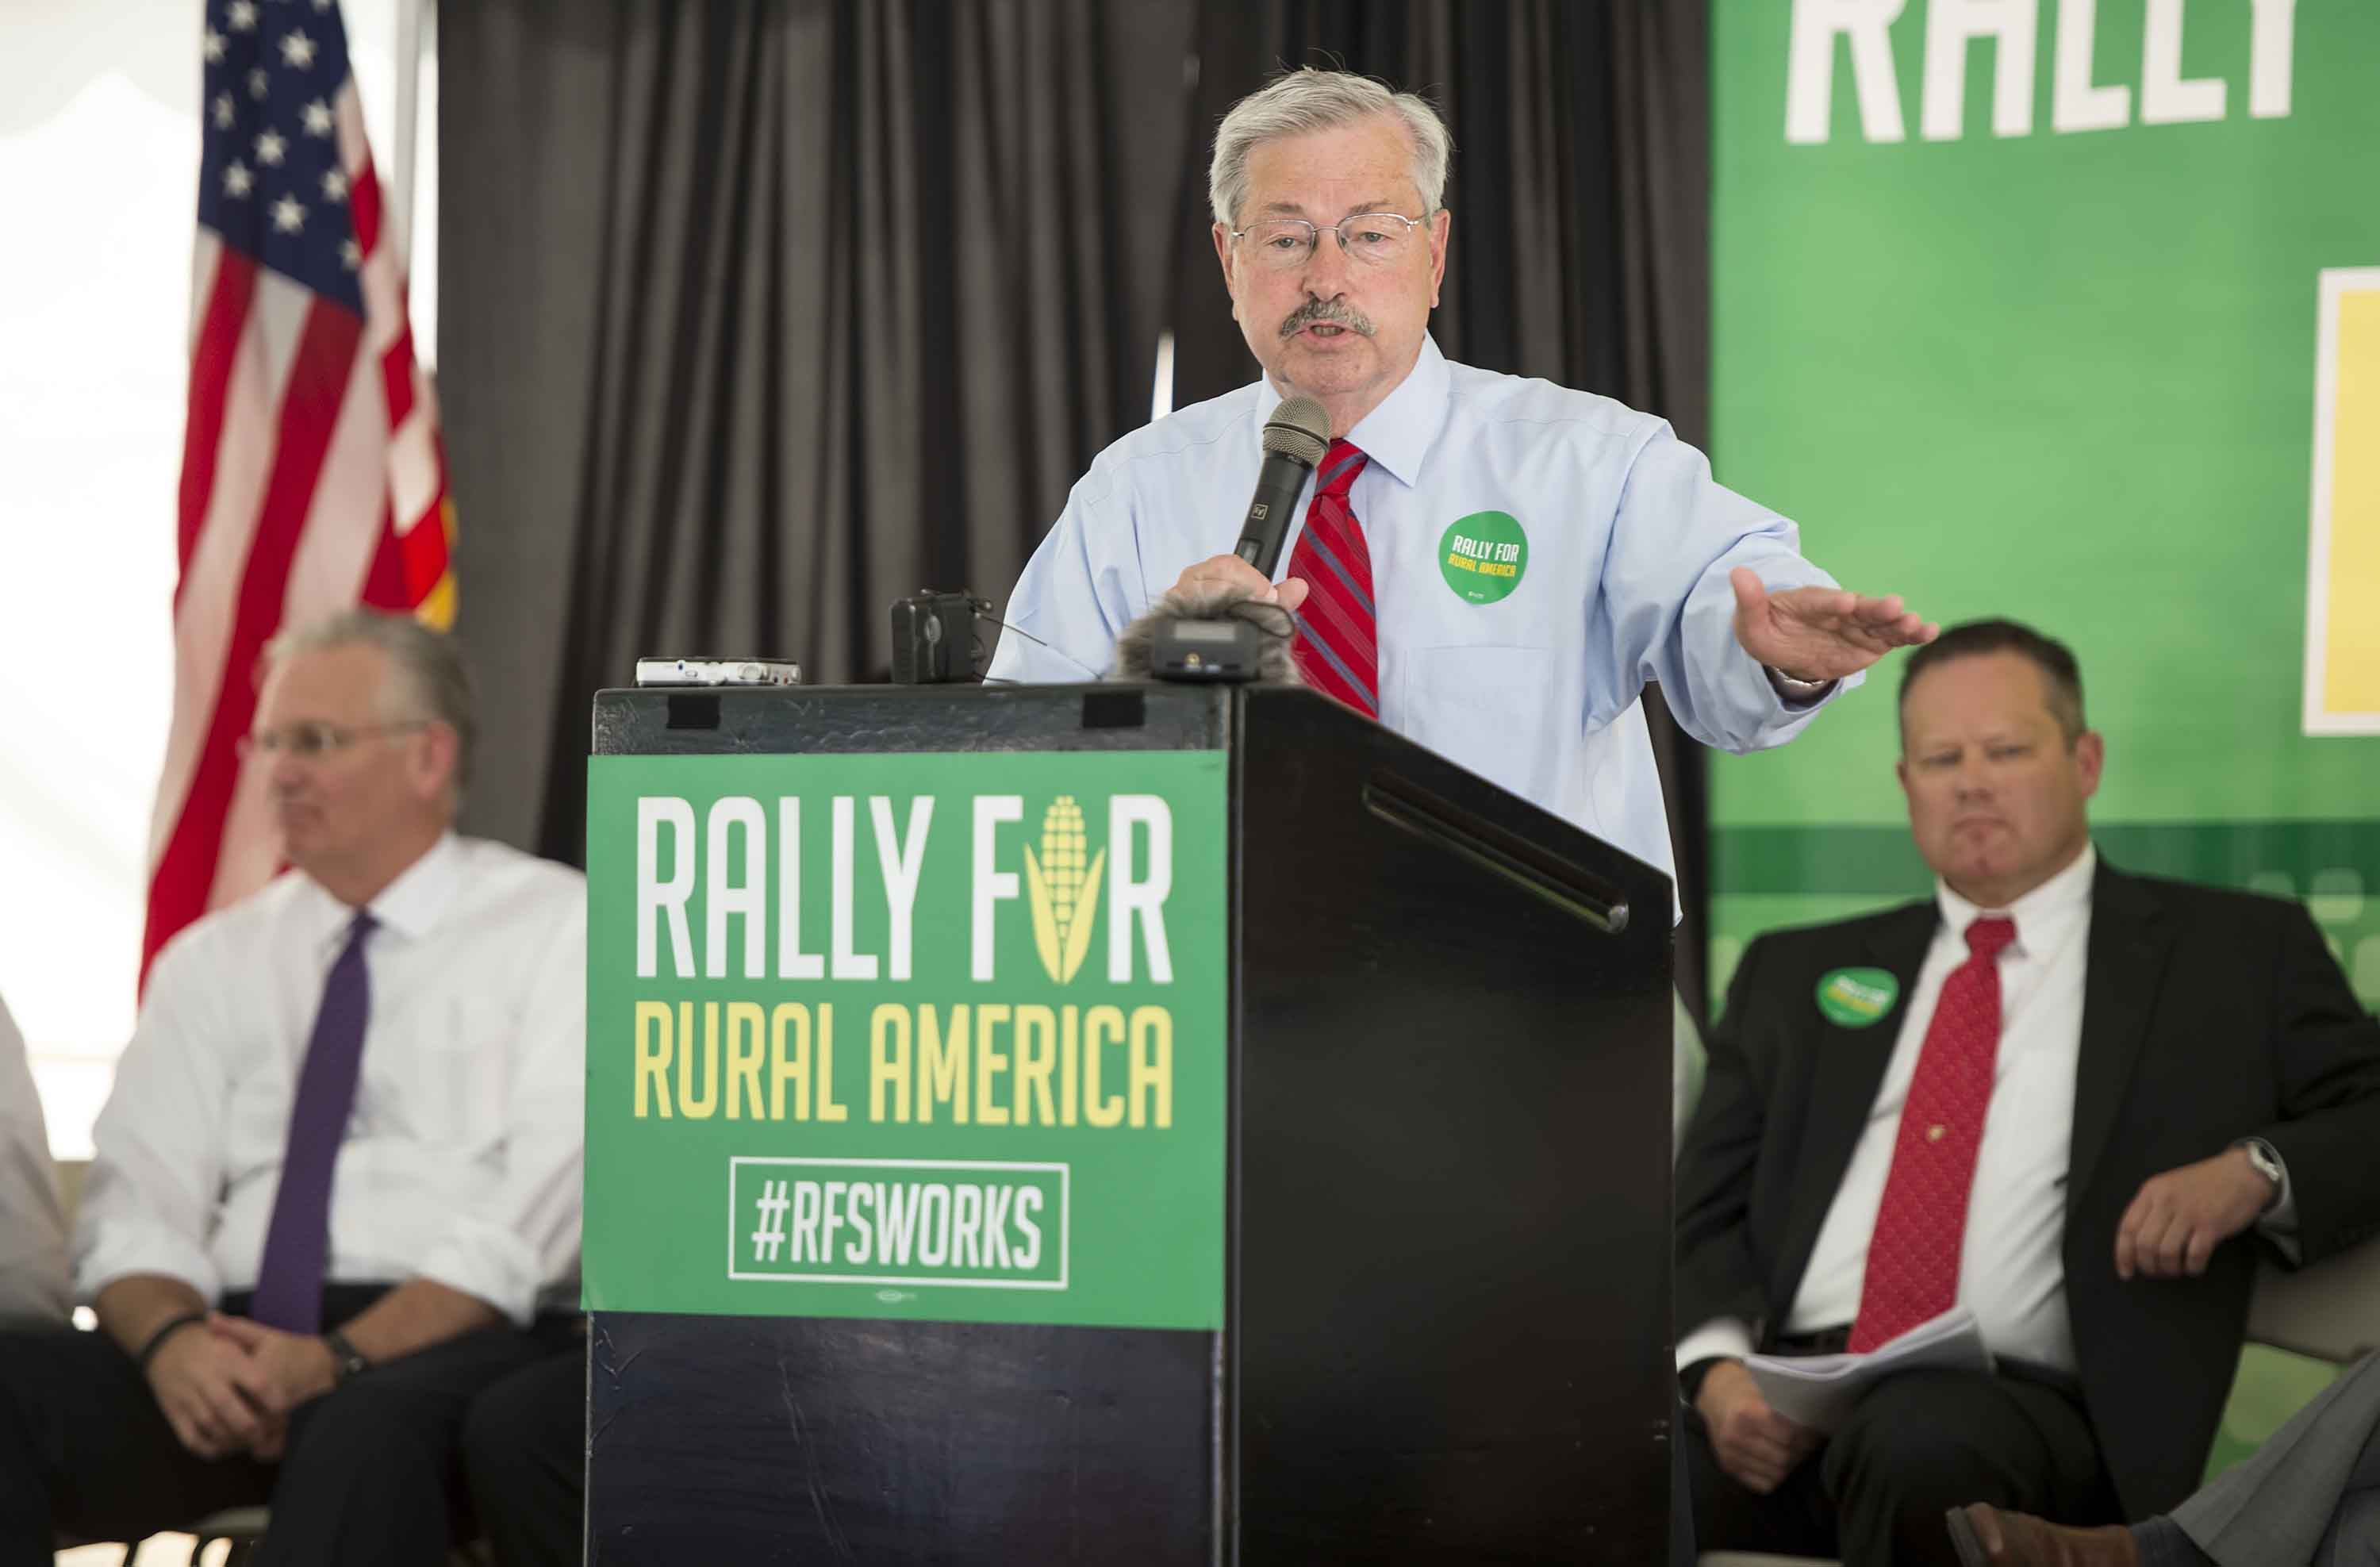 Iowa Gov. Terry Branstad, center, with Missouri Gov. Jay Nixon, background left, at a rally in support of agricultural use for ethanol production as a stimulus to Midwestern states. (David Eulitt/Kansas City Star/TNS)